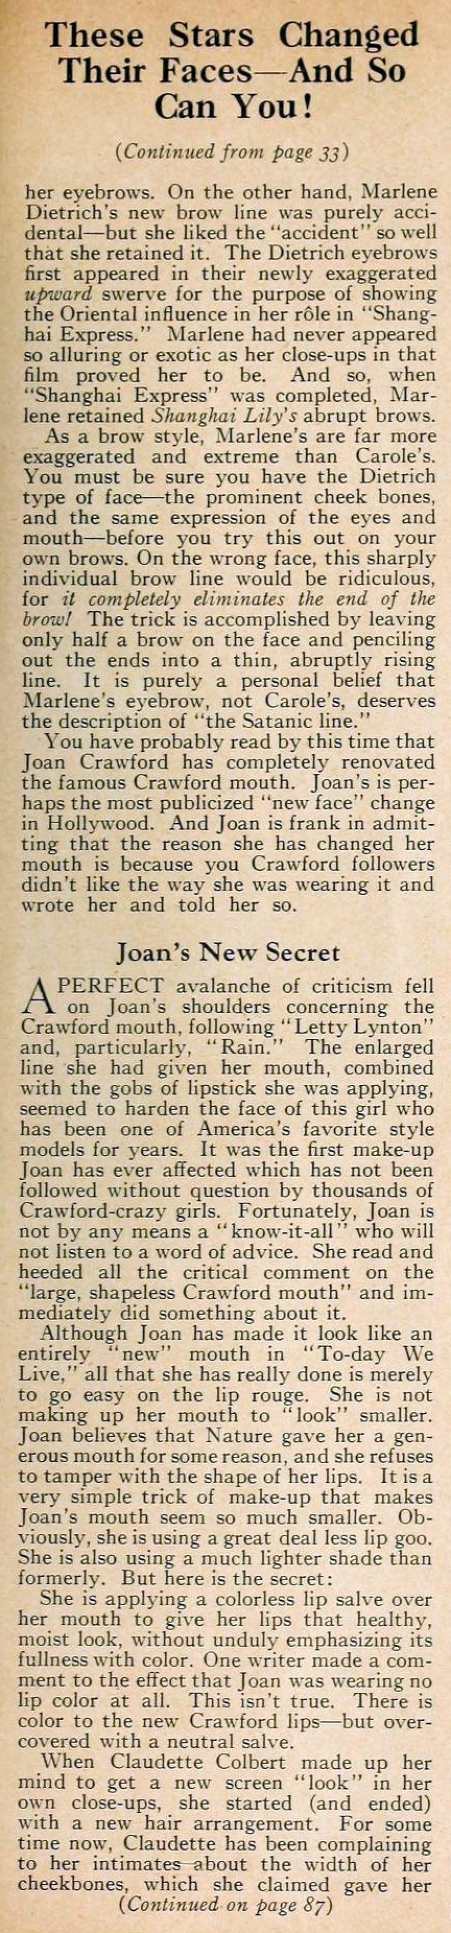 carole lombard motion picture june 1933 changed looks 02a